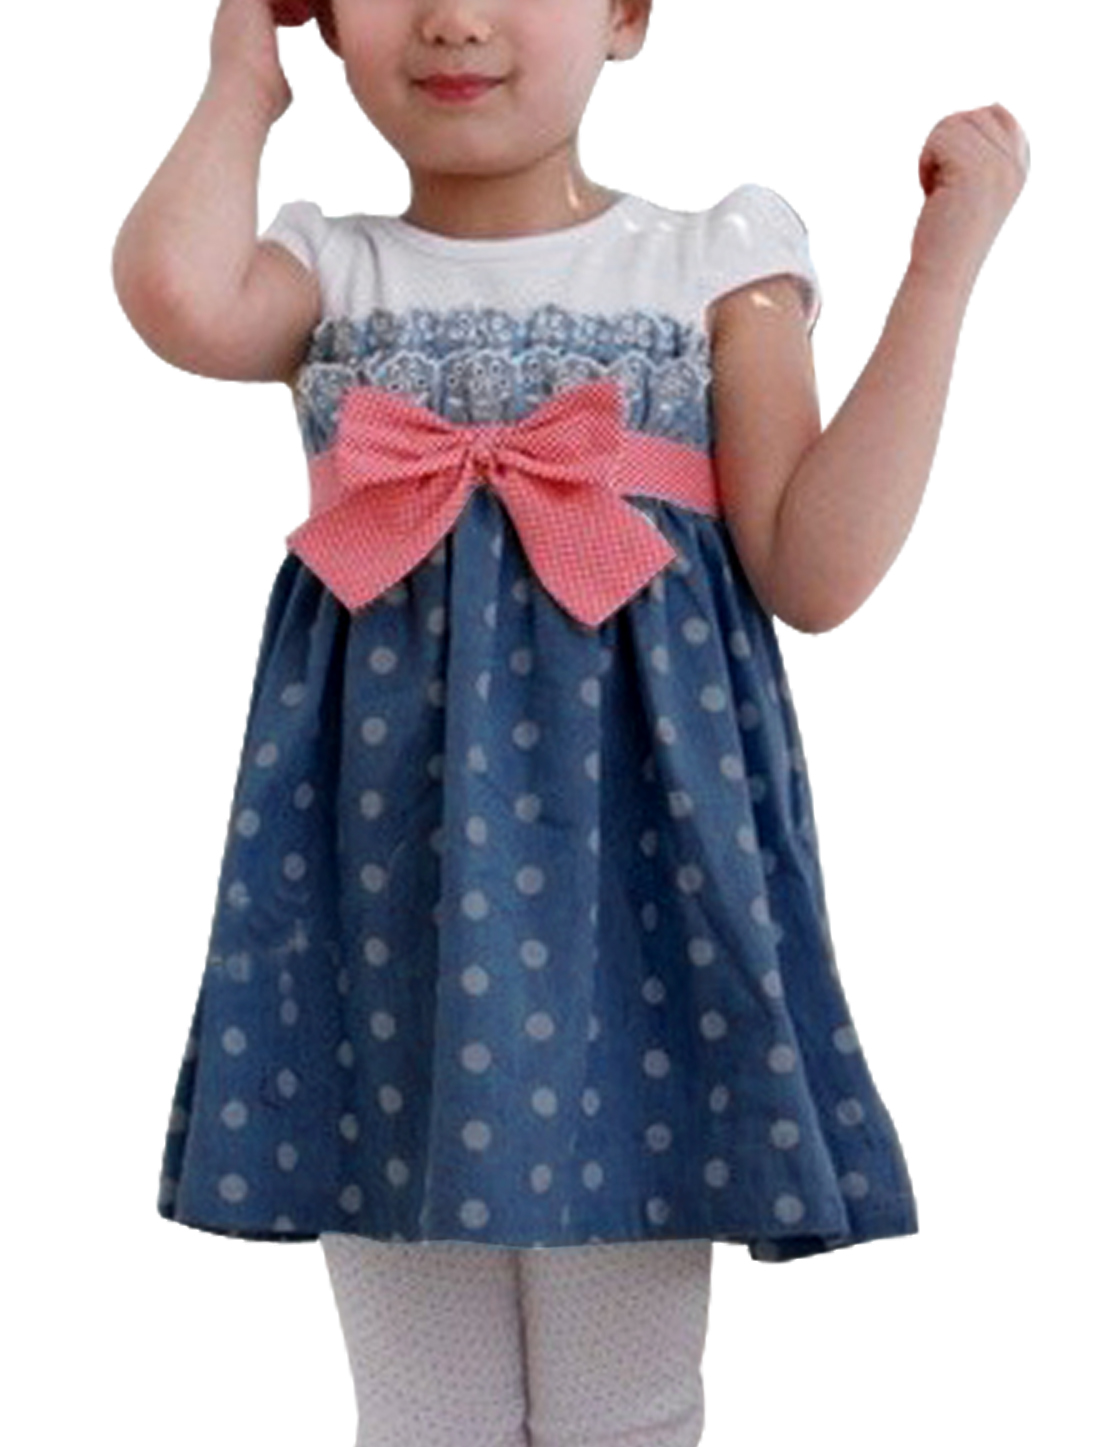 Girl Chic Plaids Pattern Bowtie Decor Front Blue Denim Dress 0-3 Month